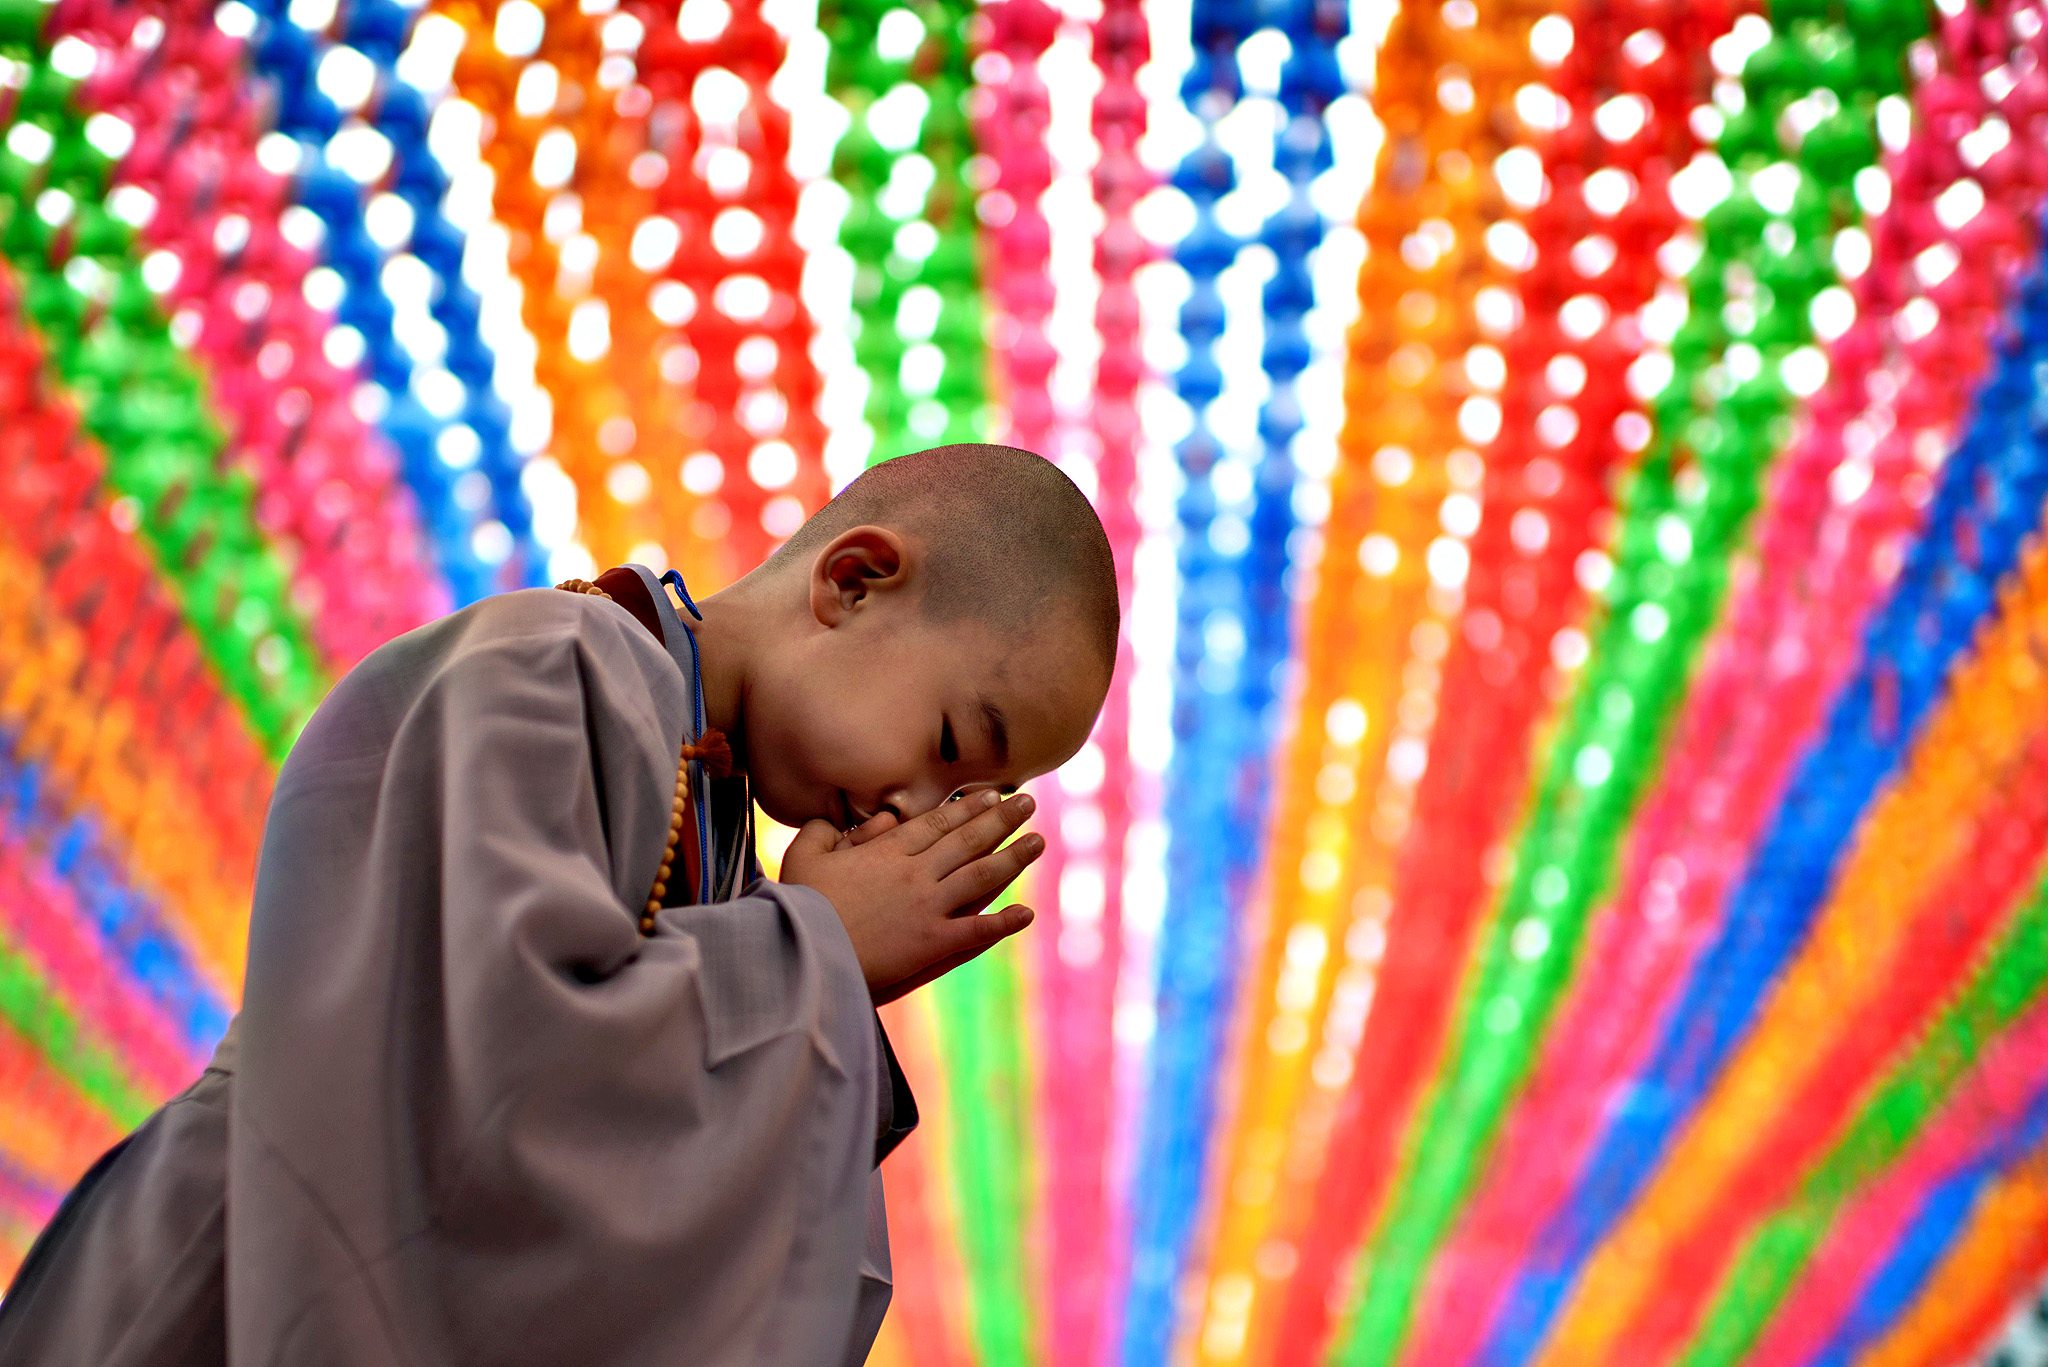 A young novice monk prays after having his head shaved by Buddhist monks during a ceremony entitled 'Children Becoming Buddhist Monks', at the Jogye temple in Seoul on May 11, 2015.  Following the ceremony the children stay at the temple where they are taught about Buddhism, for two weeks, until Buddha's birthday on May 25